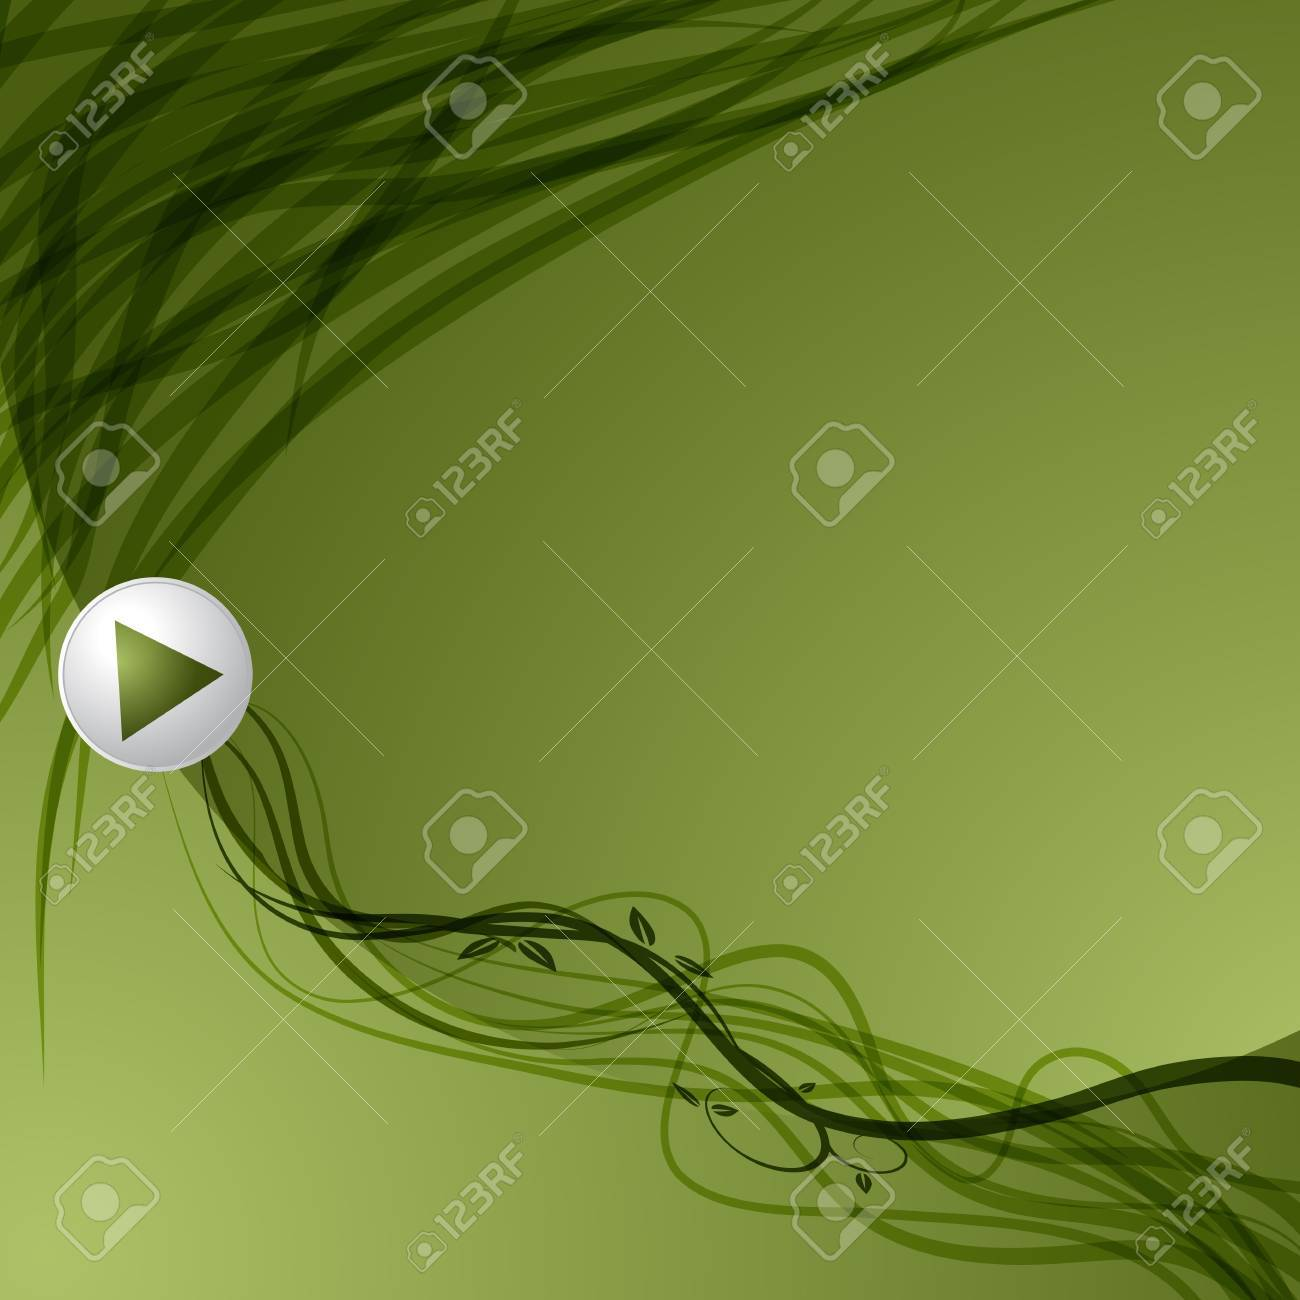 An image of a green leaf vine arrow background. Stock Vector - 9805366